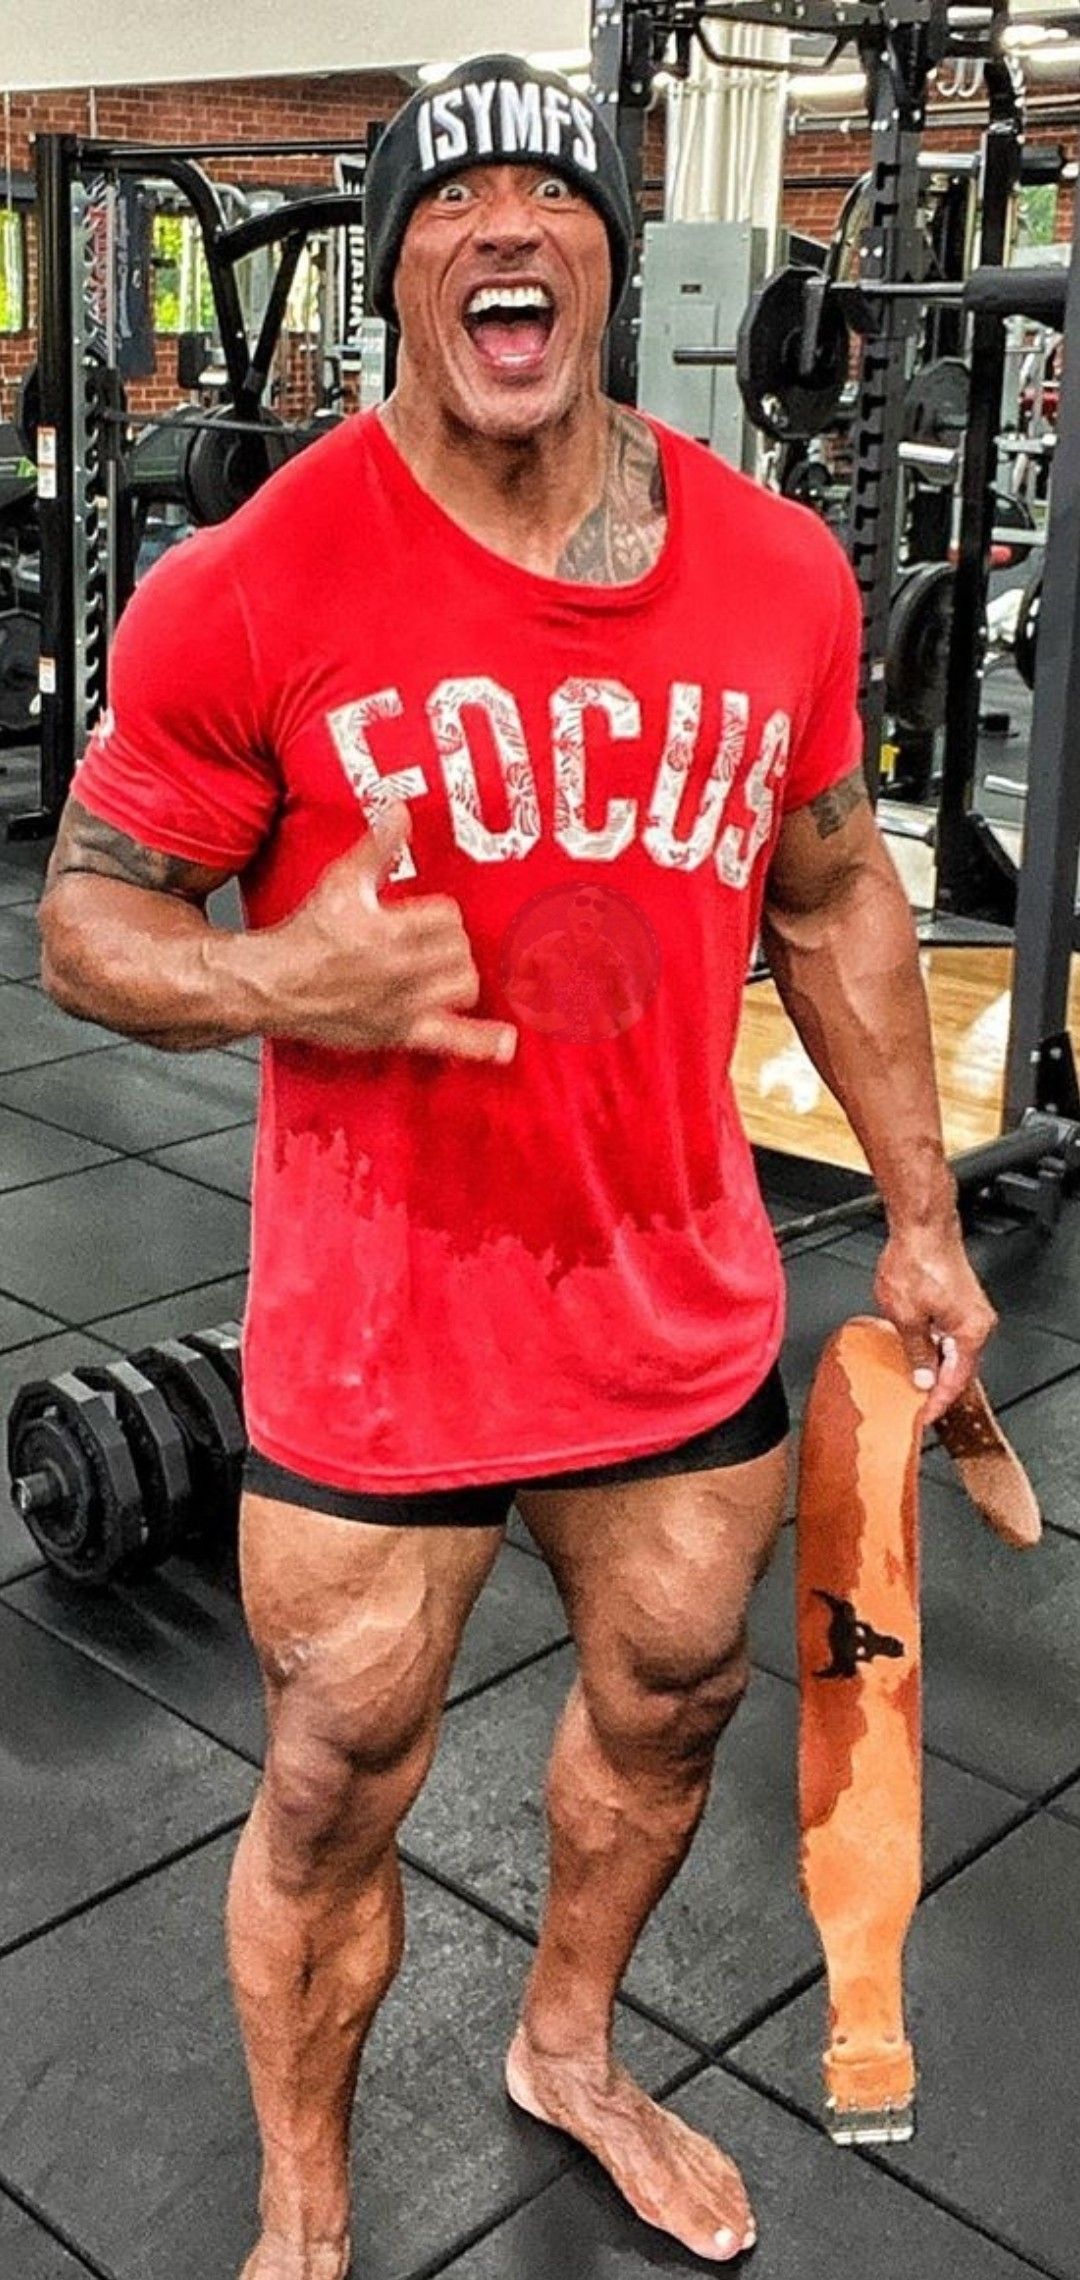 My Leg Day Workout Stay Focus Always Be The Hardest Worker In The Room The Rock Dwayne Johnson Leg Day Workouts Dwanye Johnson